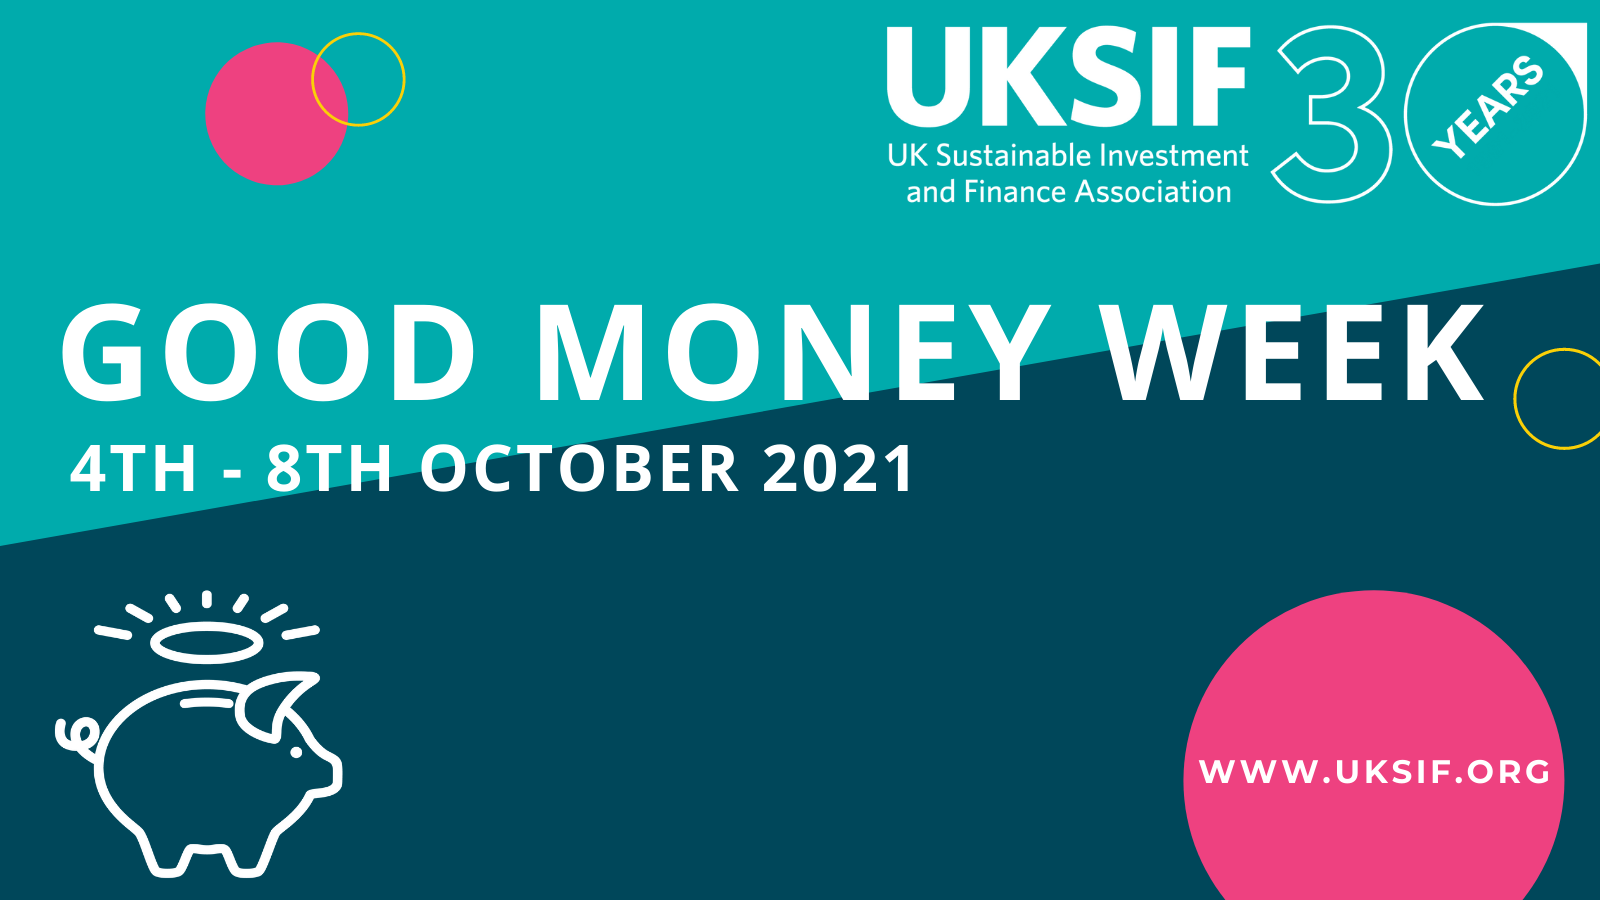 Good Money Week 2021 - Preview Image